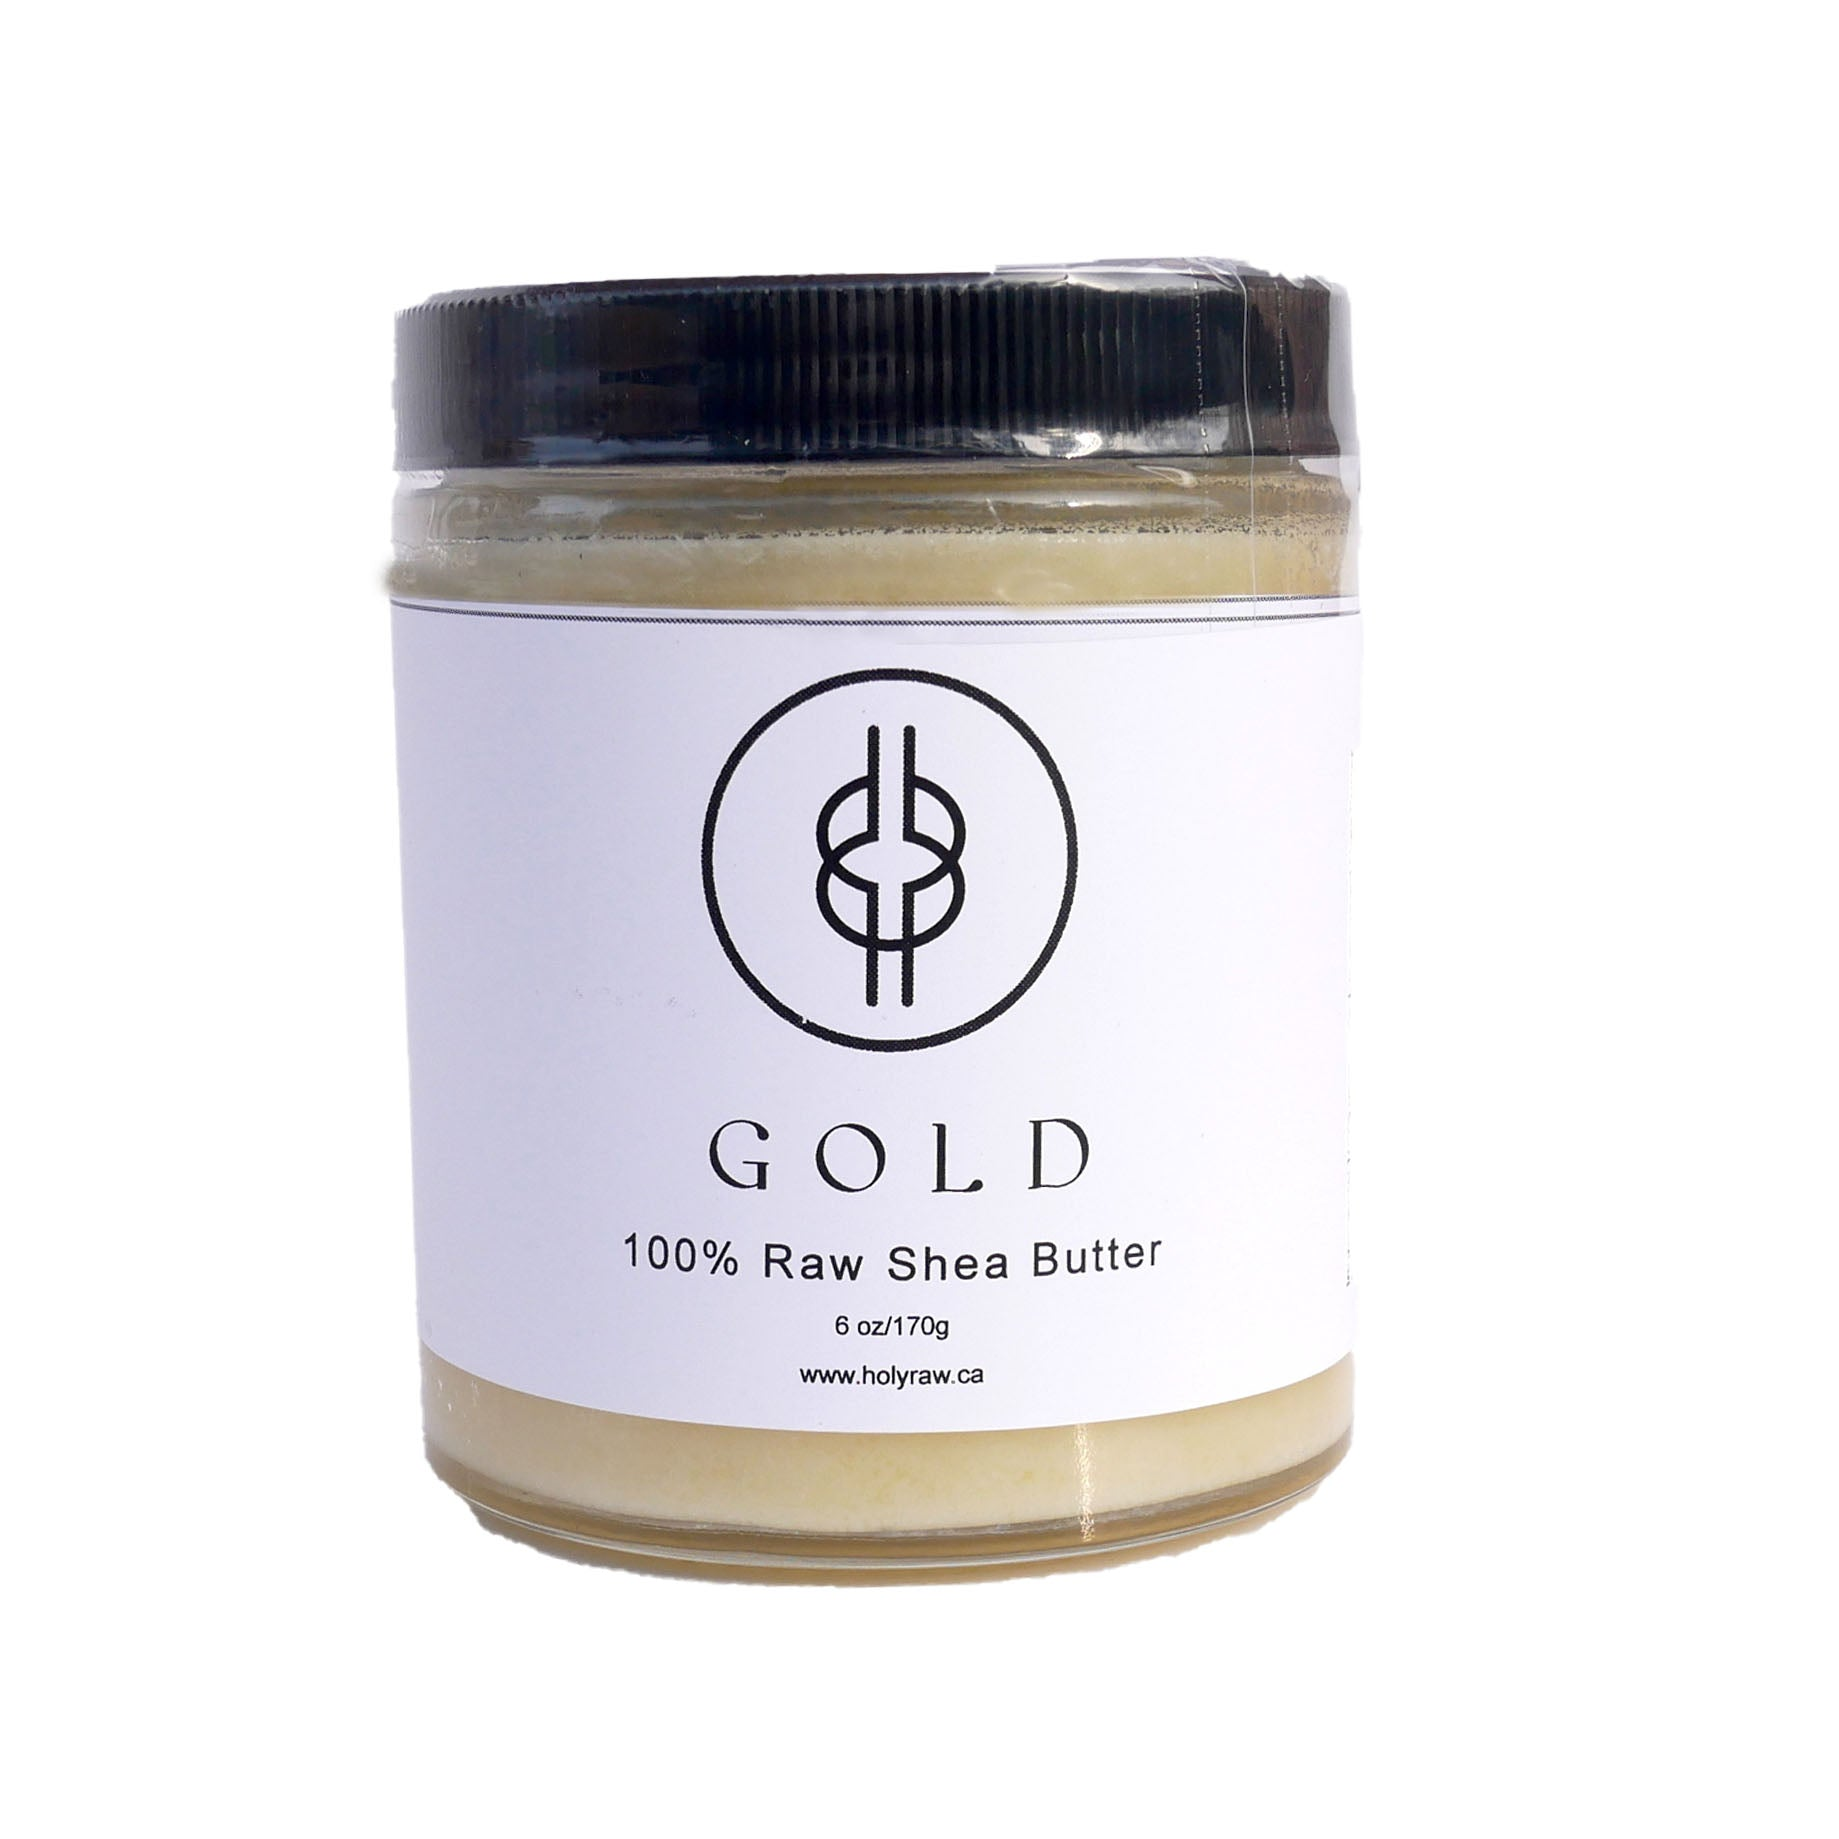 GOLD - 100% Raw Shea Butter from Ghana | HOLY RAW